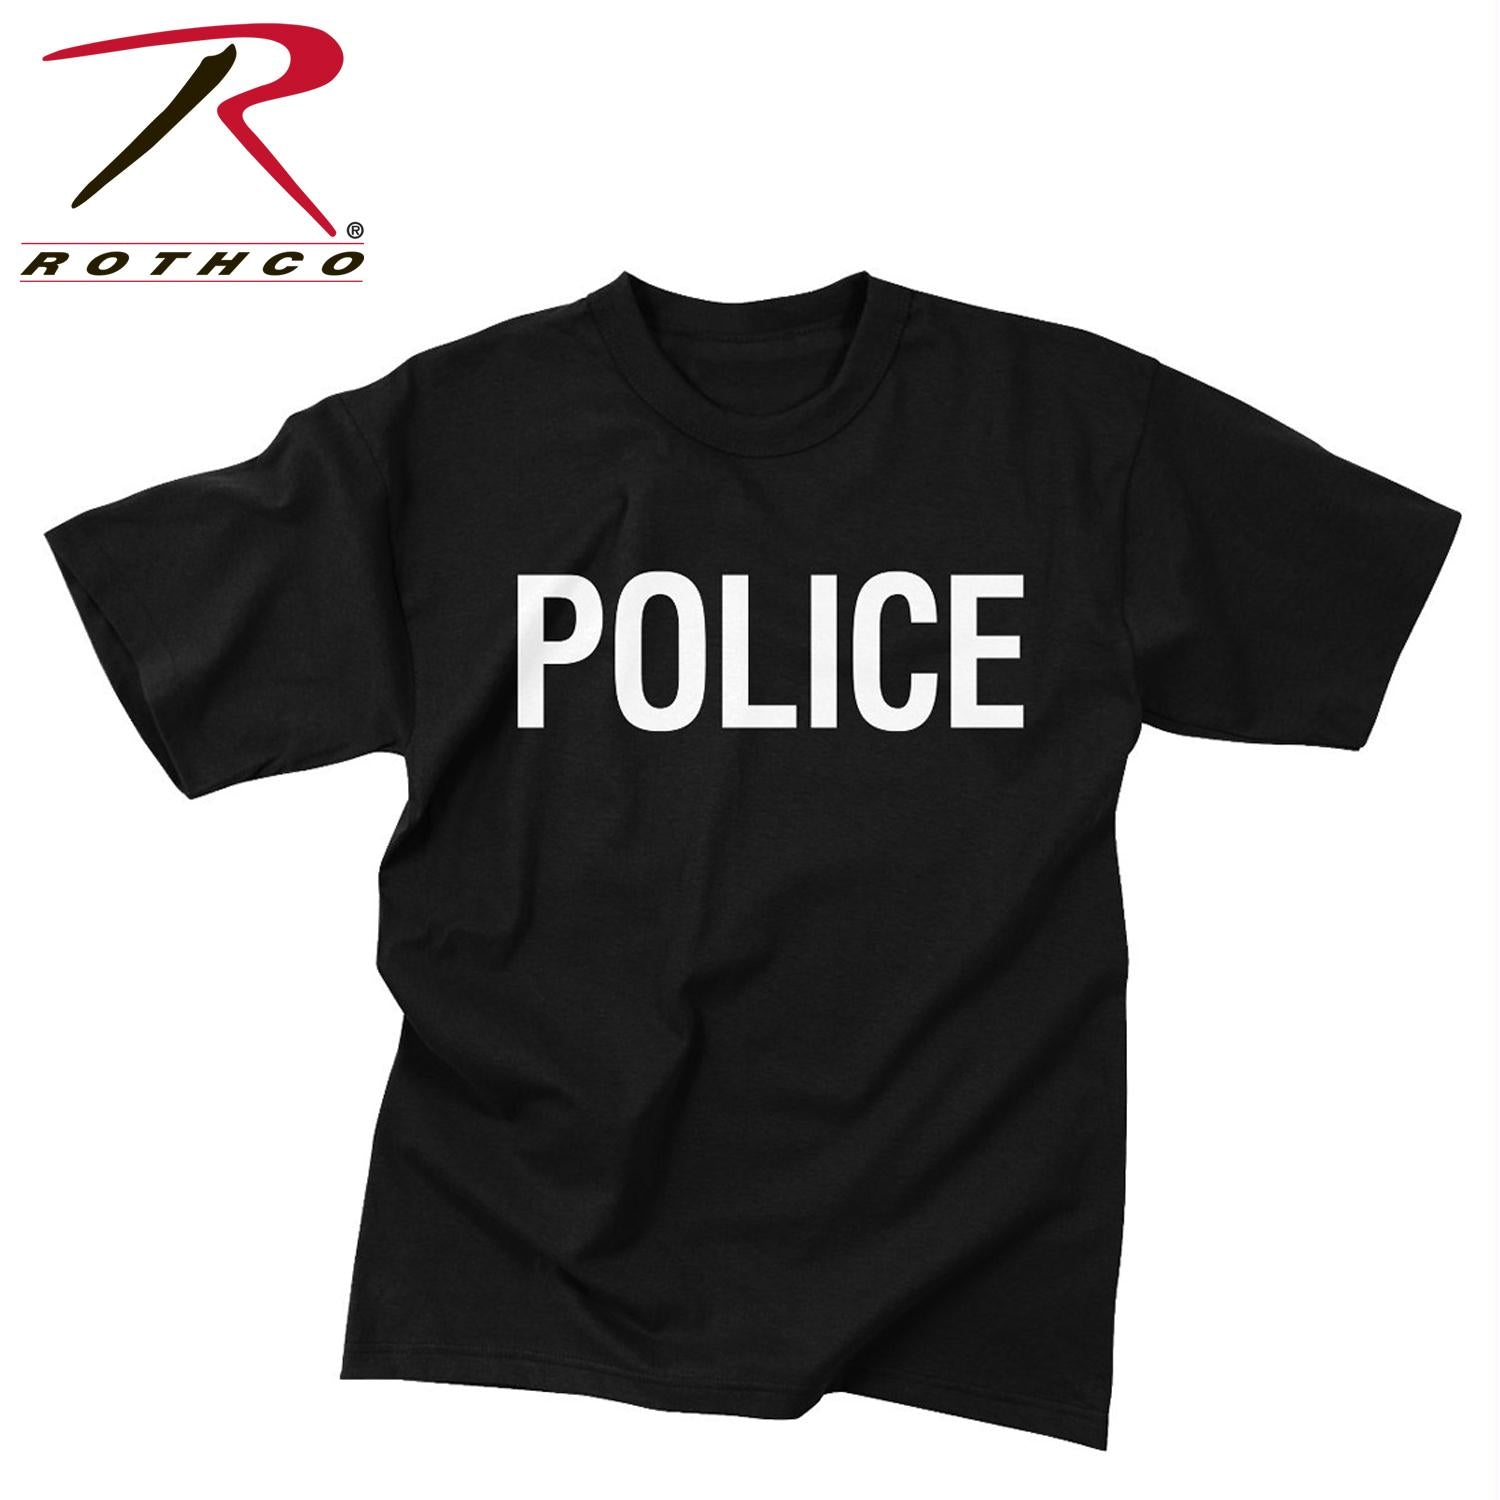 Rothco 2-Sided Police T-Shirt - 3XL